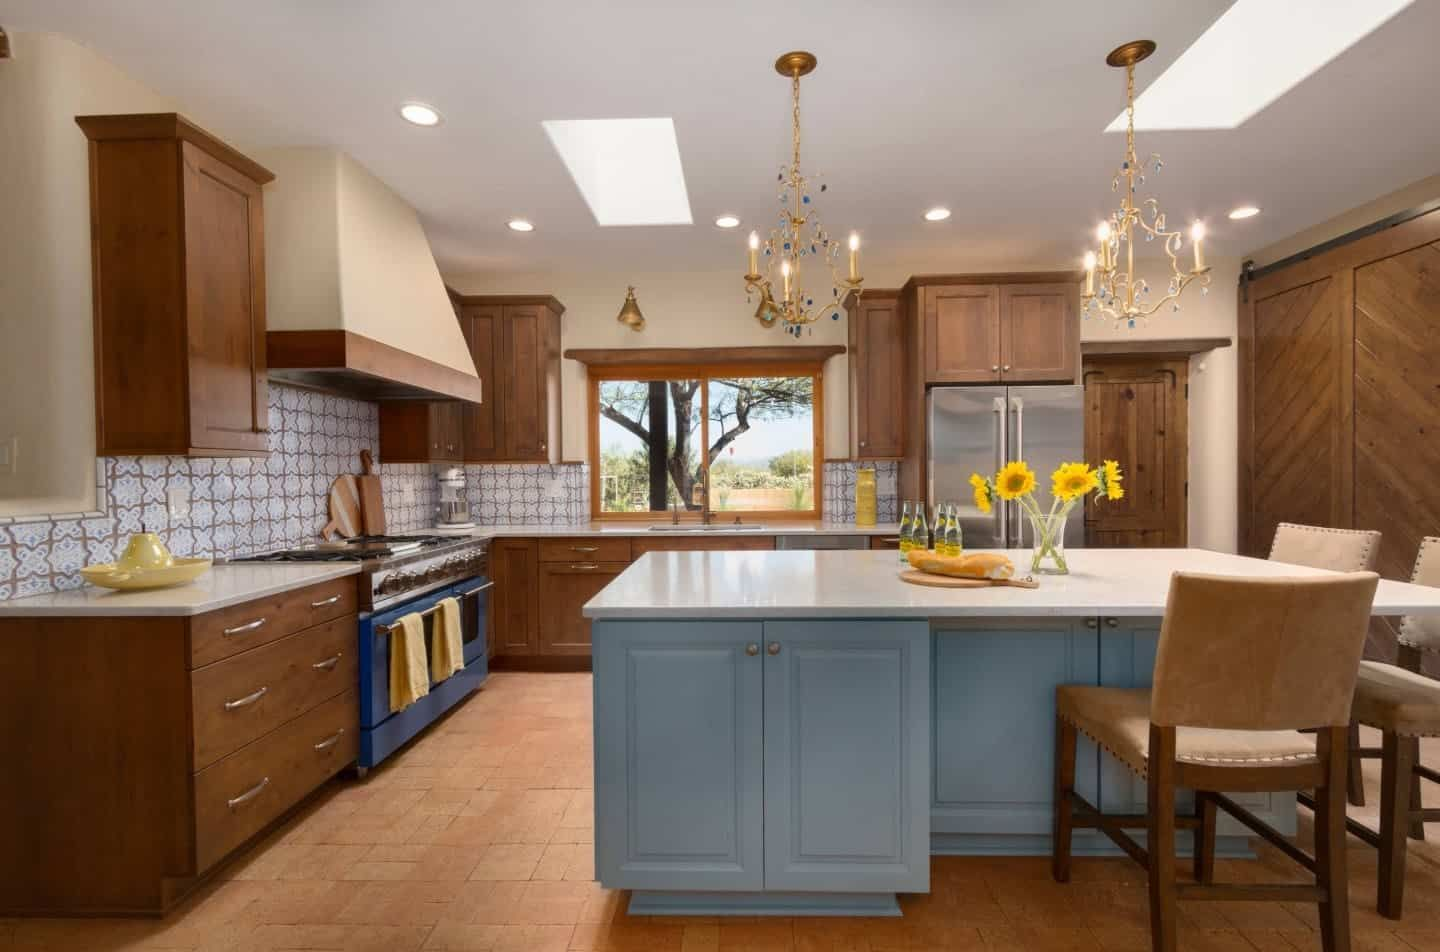 65 Southwestern Kitchen Ideas Photos Kitchen Remodel Small Kitchen Design Gallery Kitchen Photos